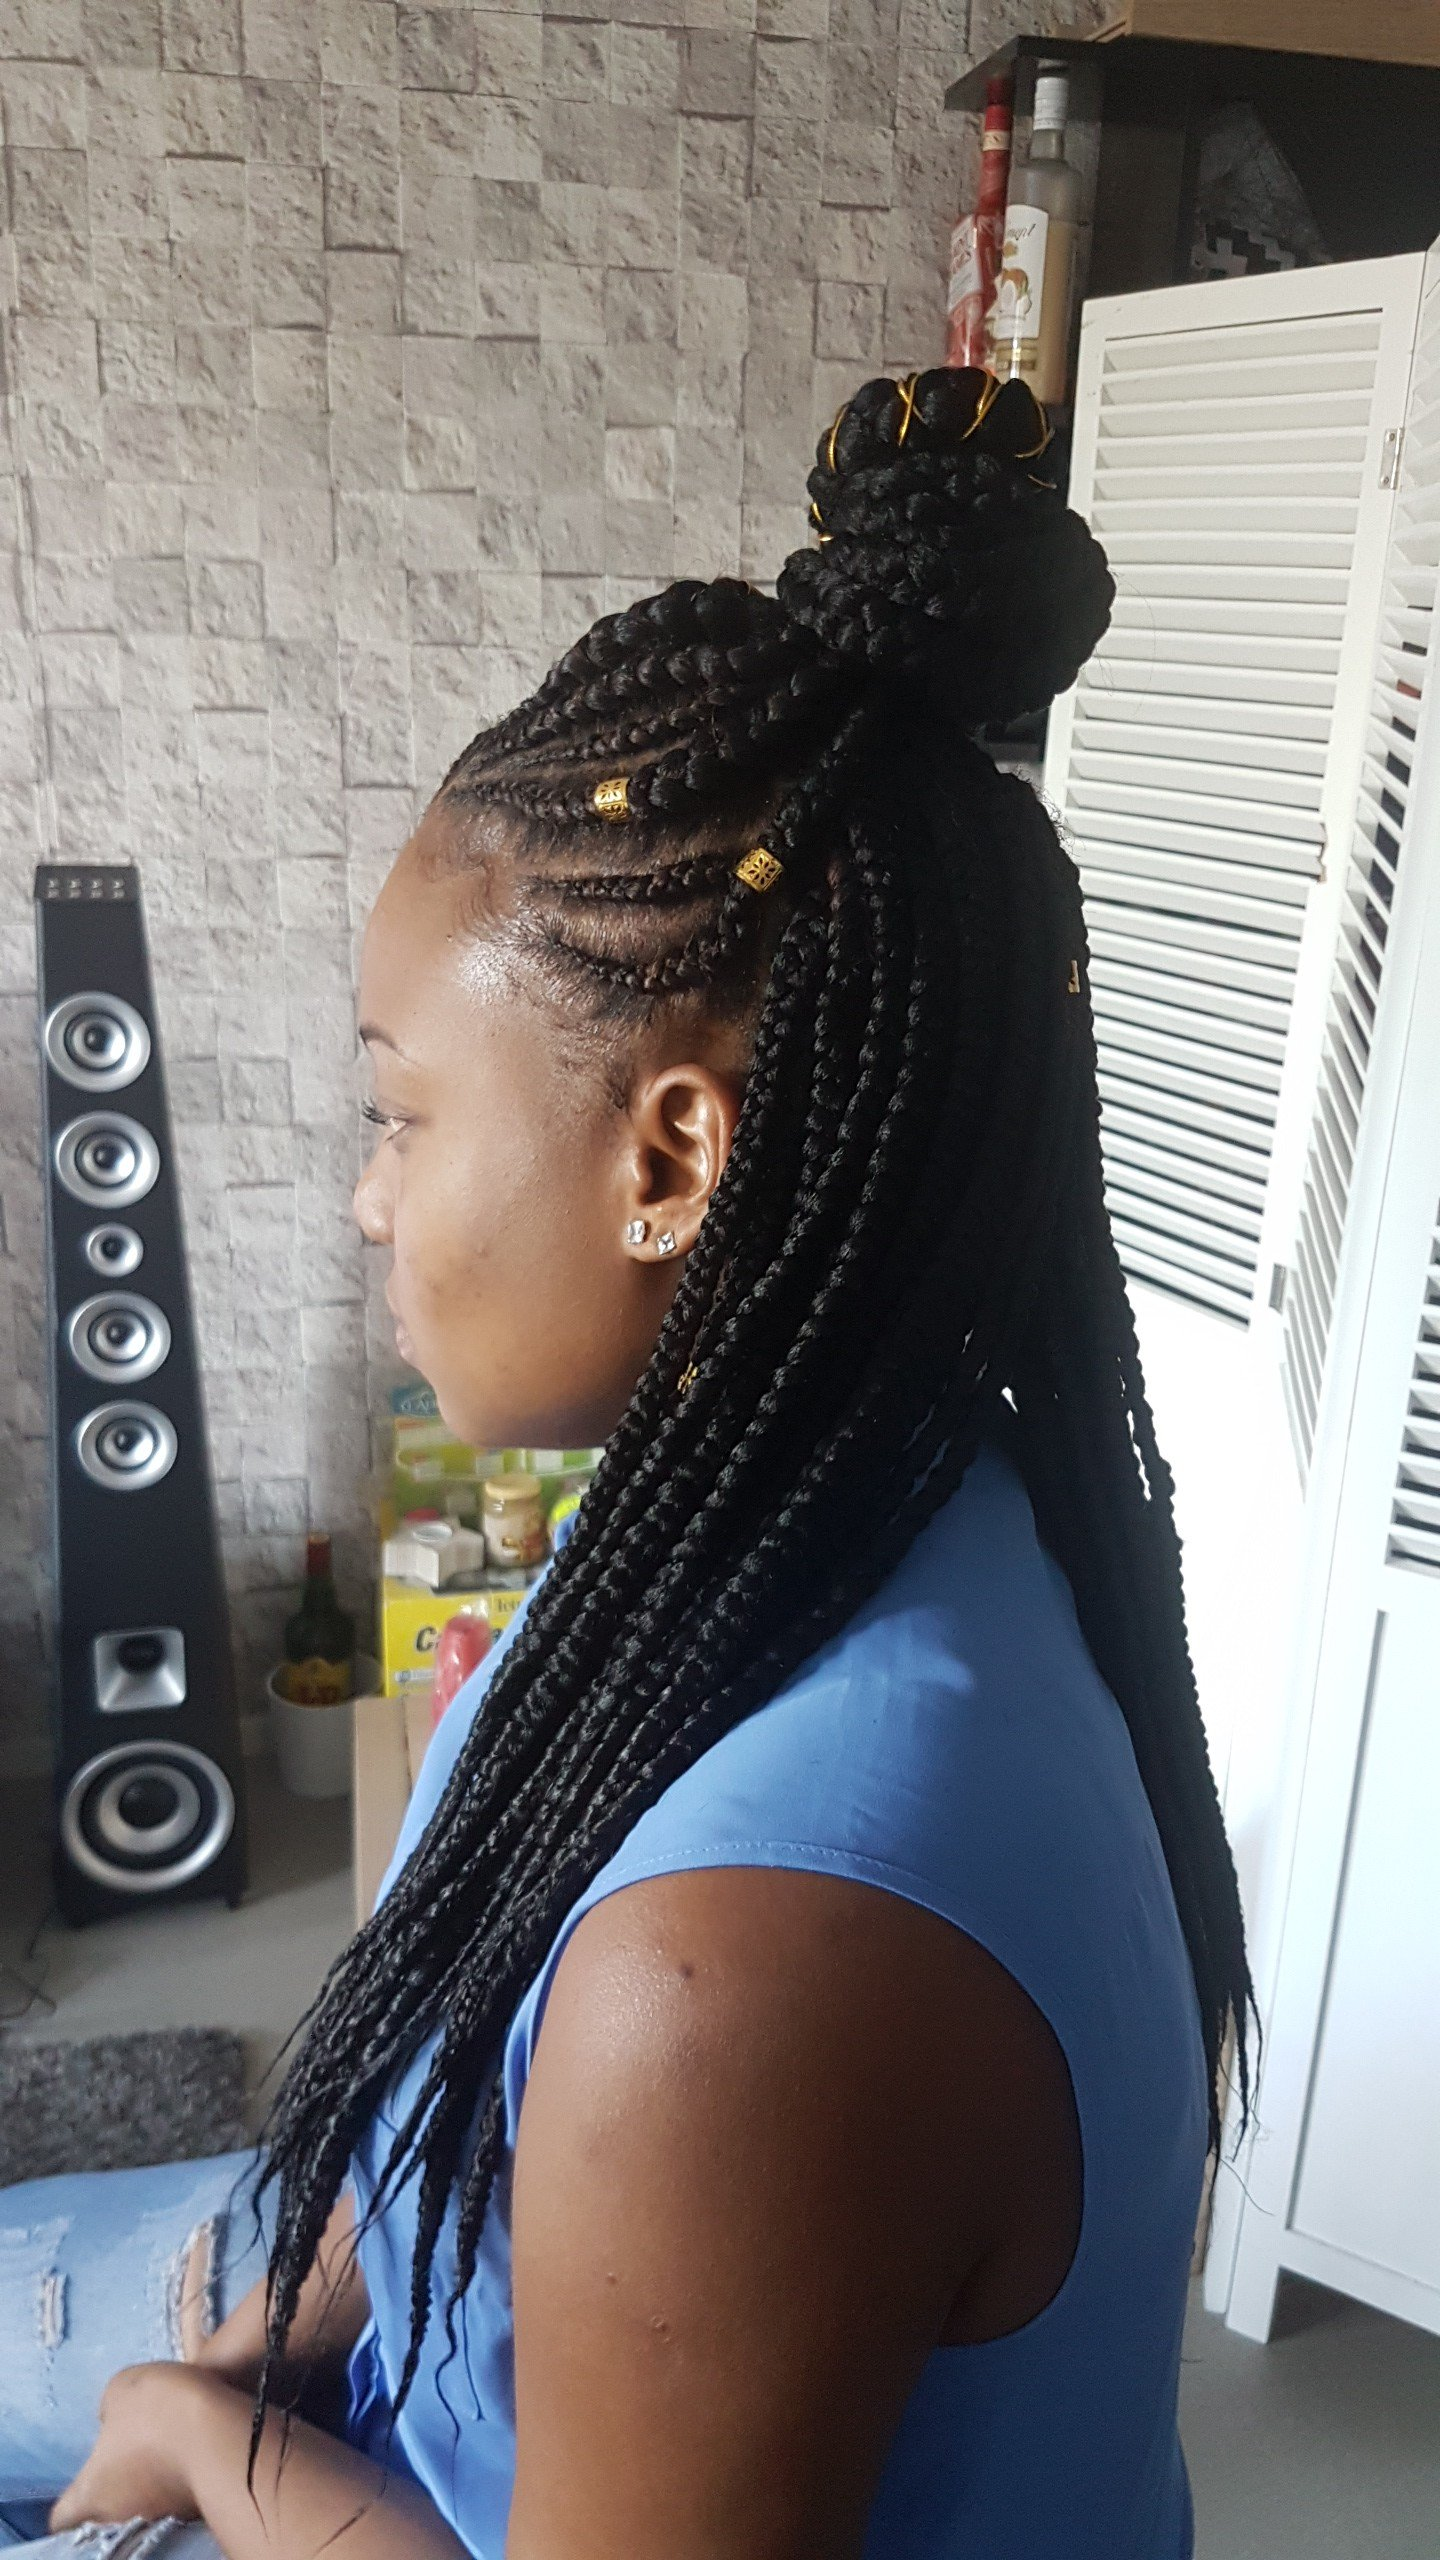 salon de coiffure afro tresse tresses box braids crochet braids vanilles tissages paris 75 77 78 91 92 93 94 95 JZXGVZUH